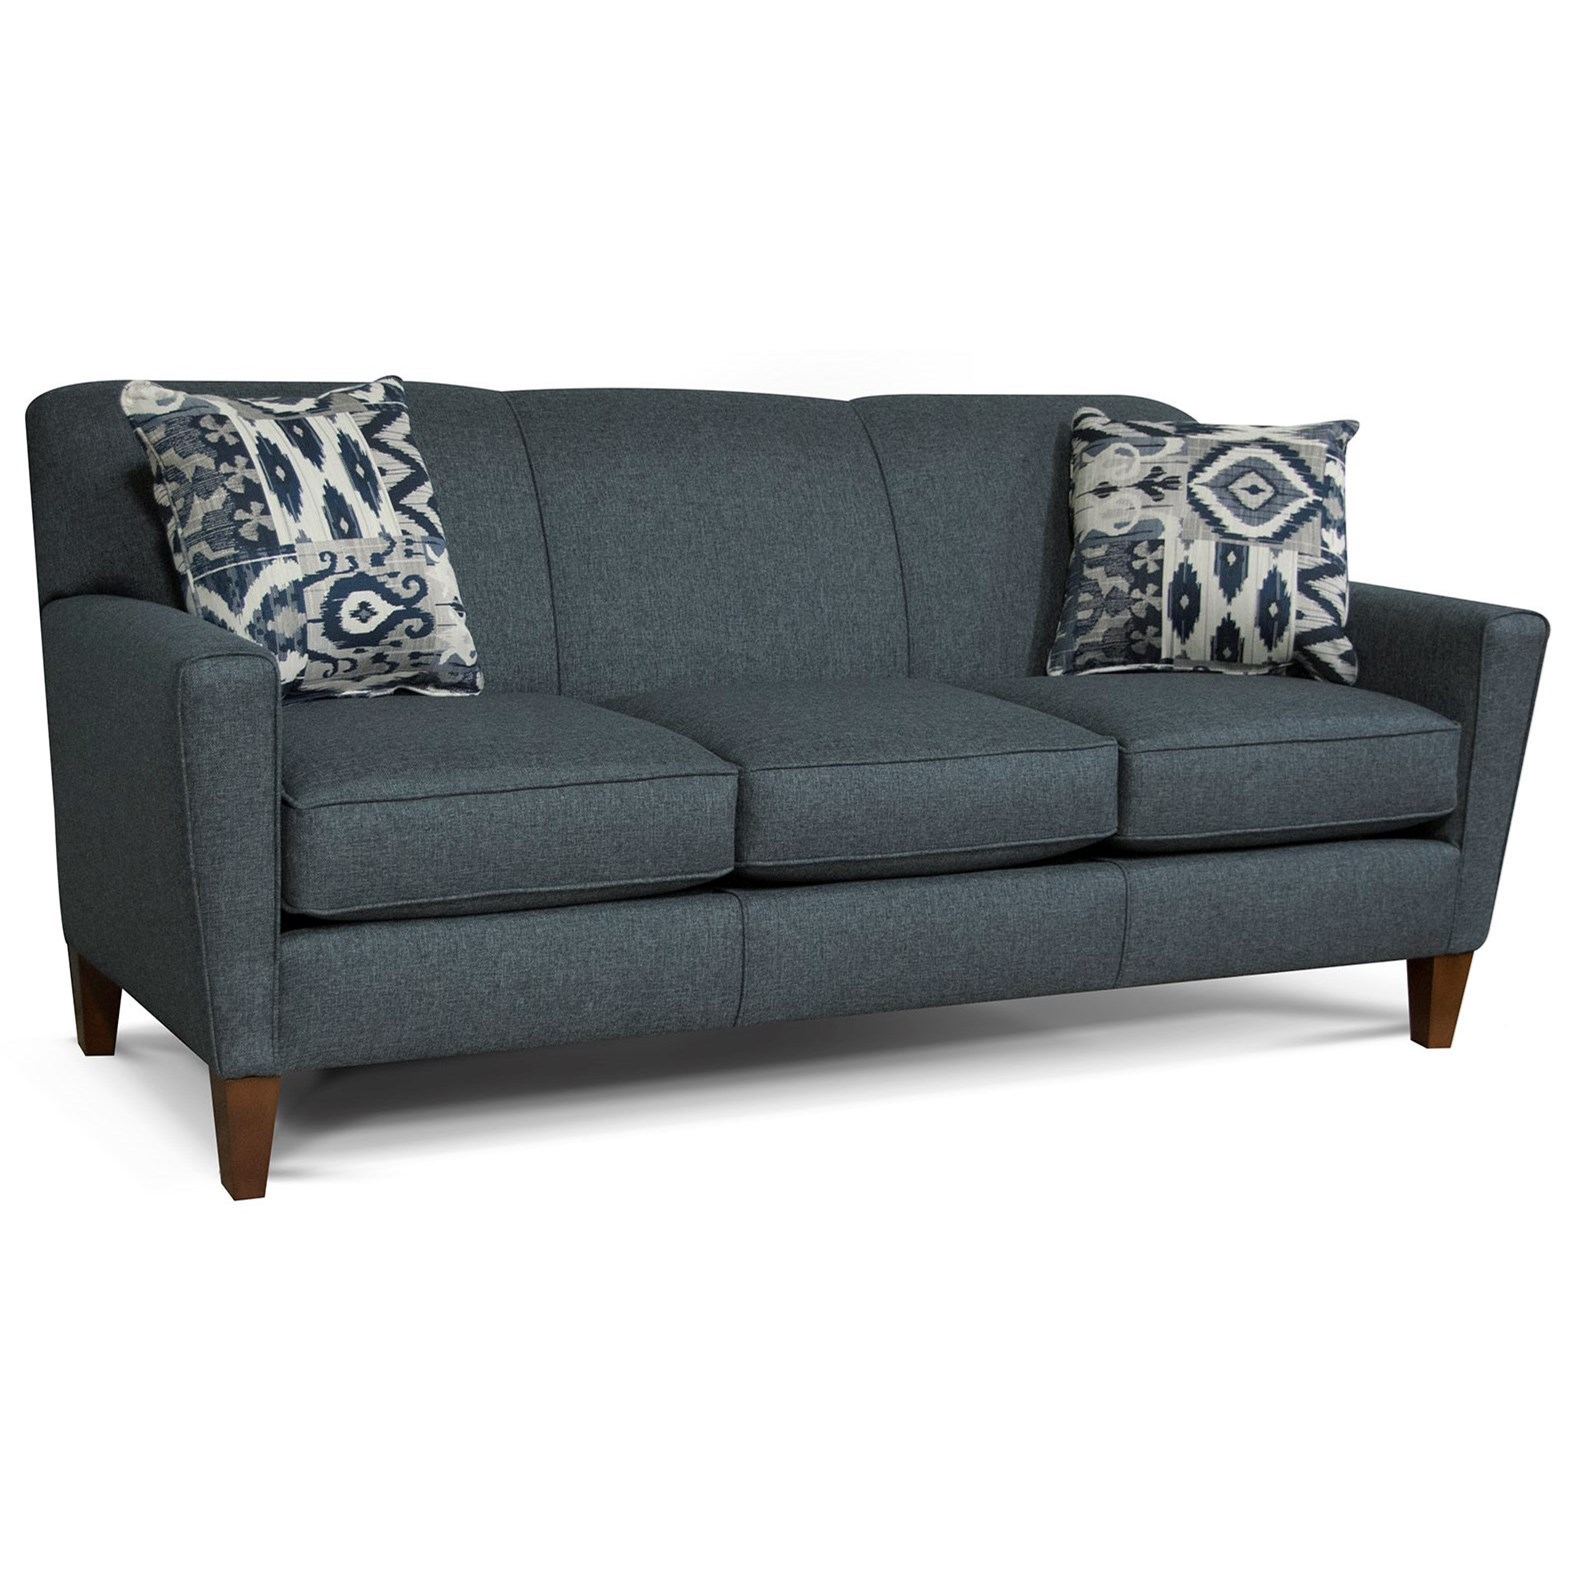 Collegedale Contemporary Upholstered Sofa By England At Goffena Furniture Mattress Center